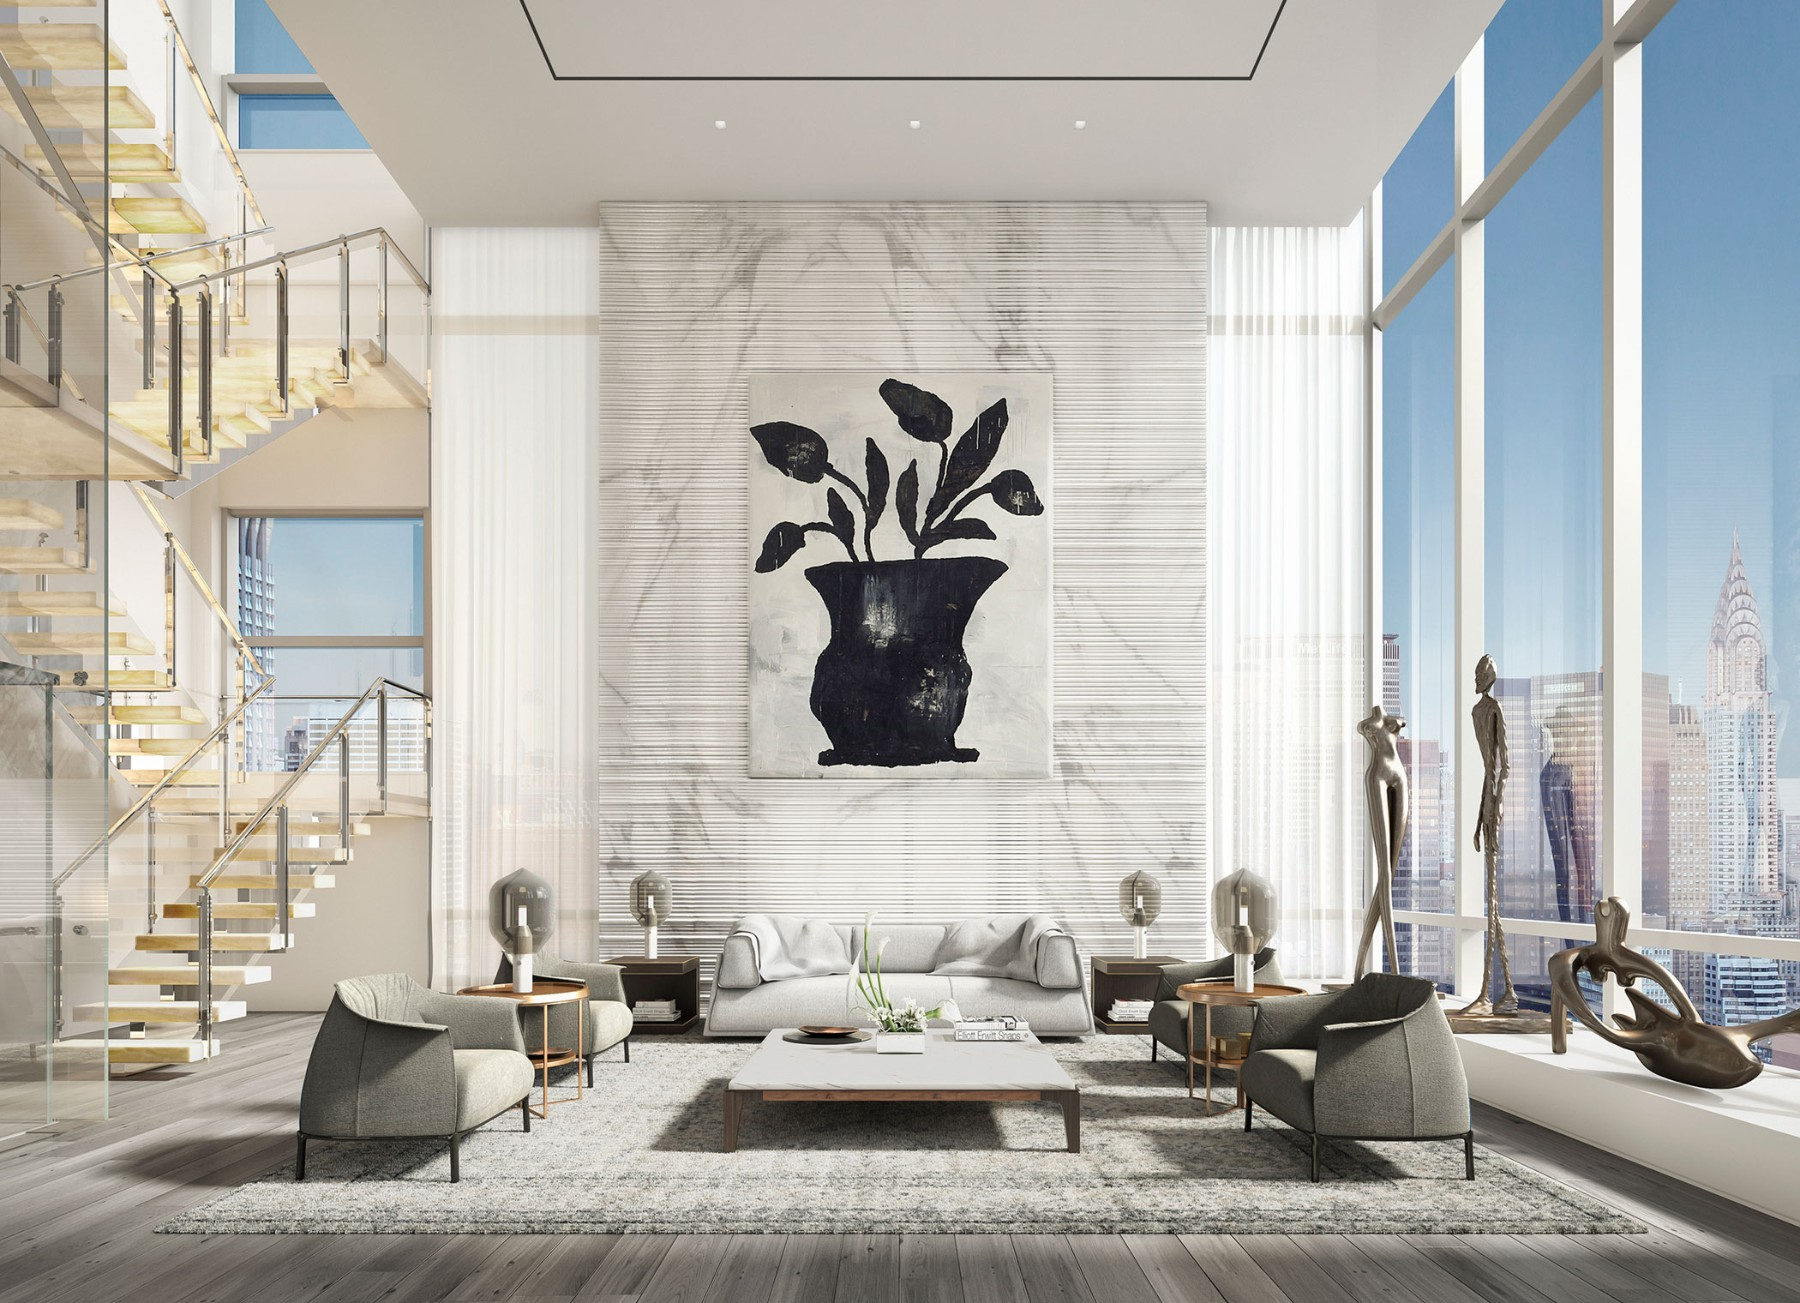 172 Madison Ave Le Penthouse